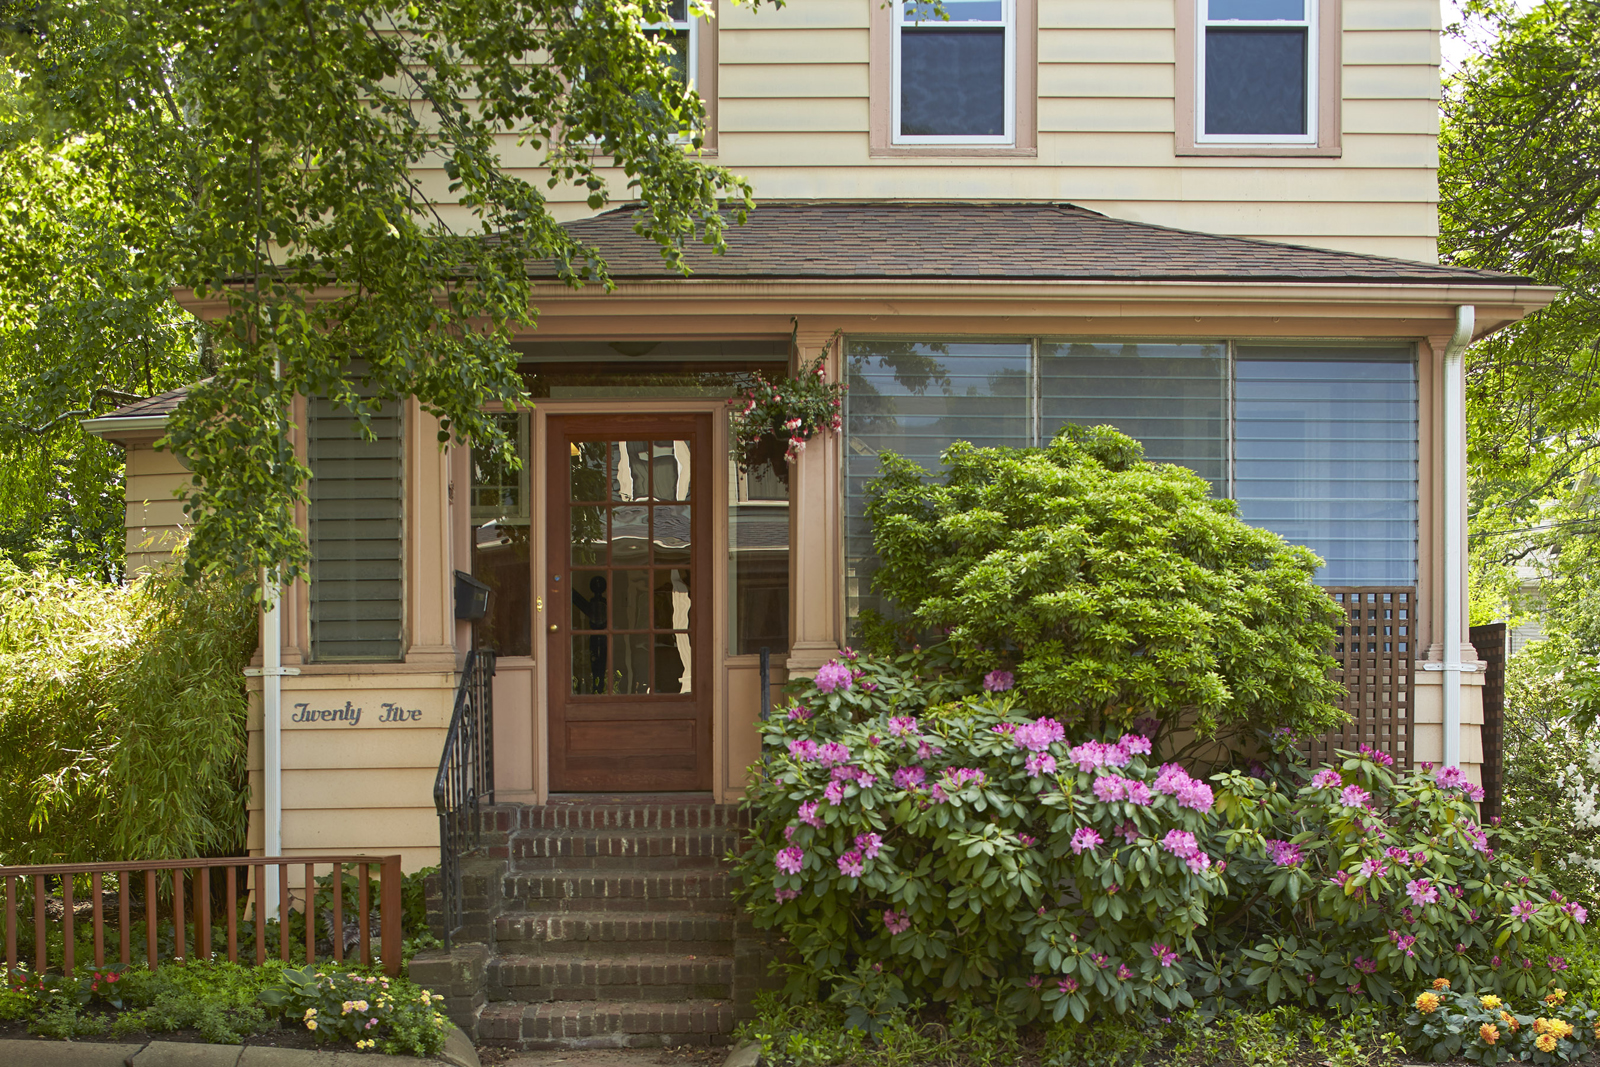 Single Family Home for Sale at 25 Sherman Street - Cambridge, MA West Cambridge, Cambridge, Massachusetts, 02138 United States